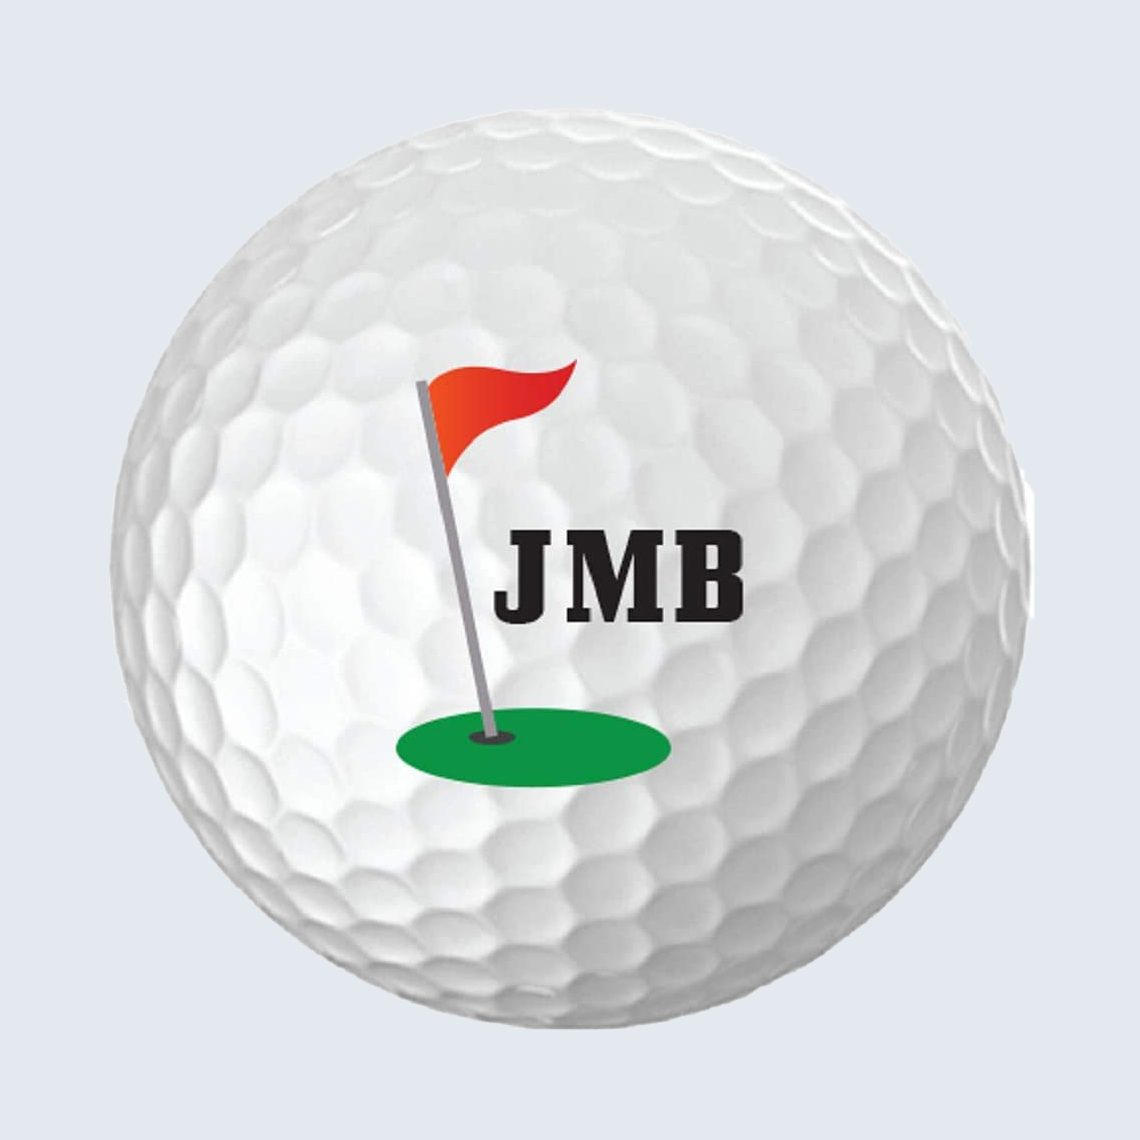 Personalized initial golf balls for father's day